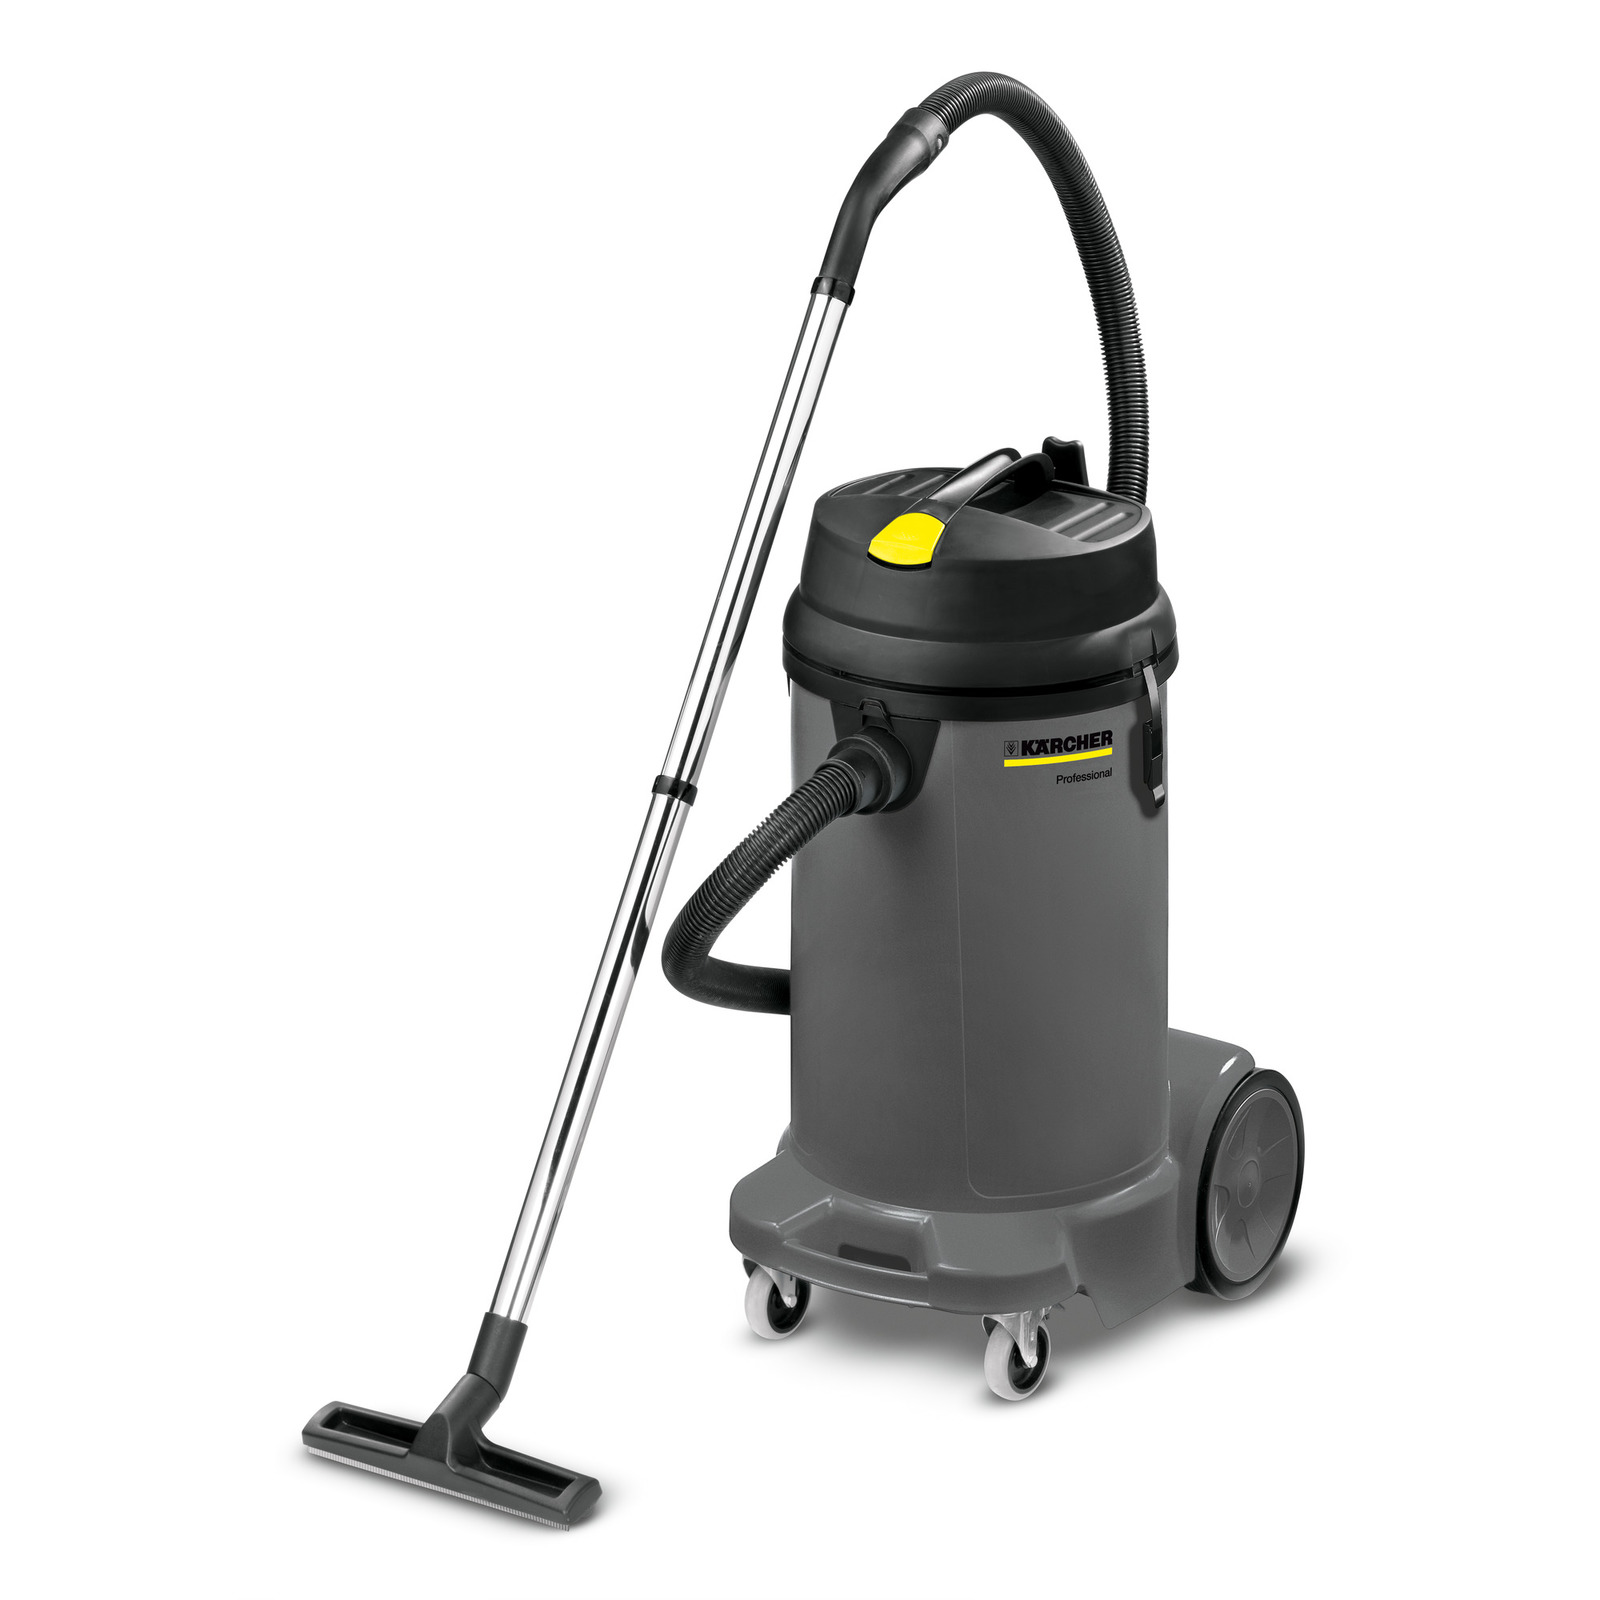 KARCHER 1.428-620.0 - NT48/1 Wet and Dry Vacuum Cleaner